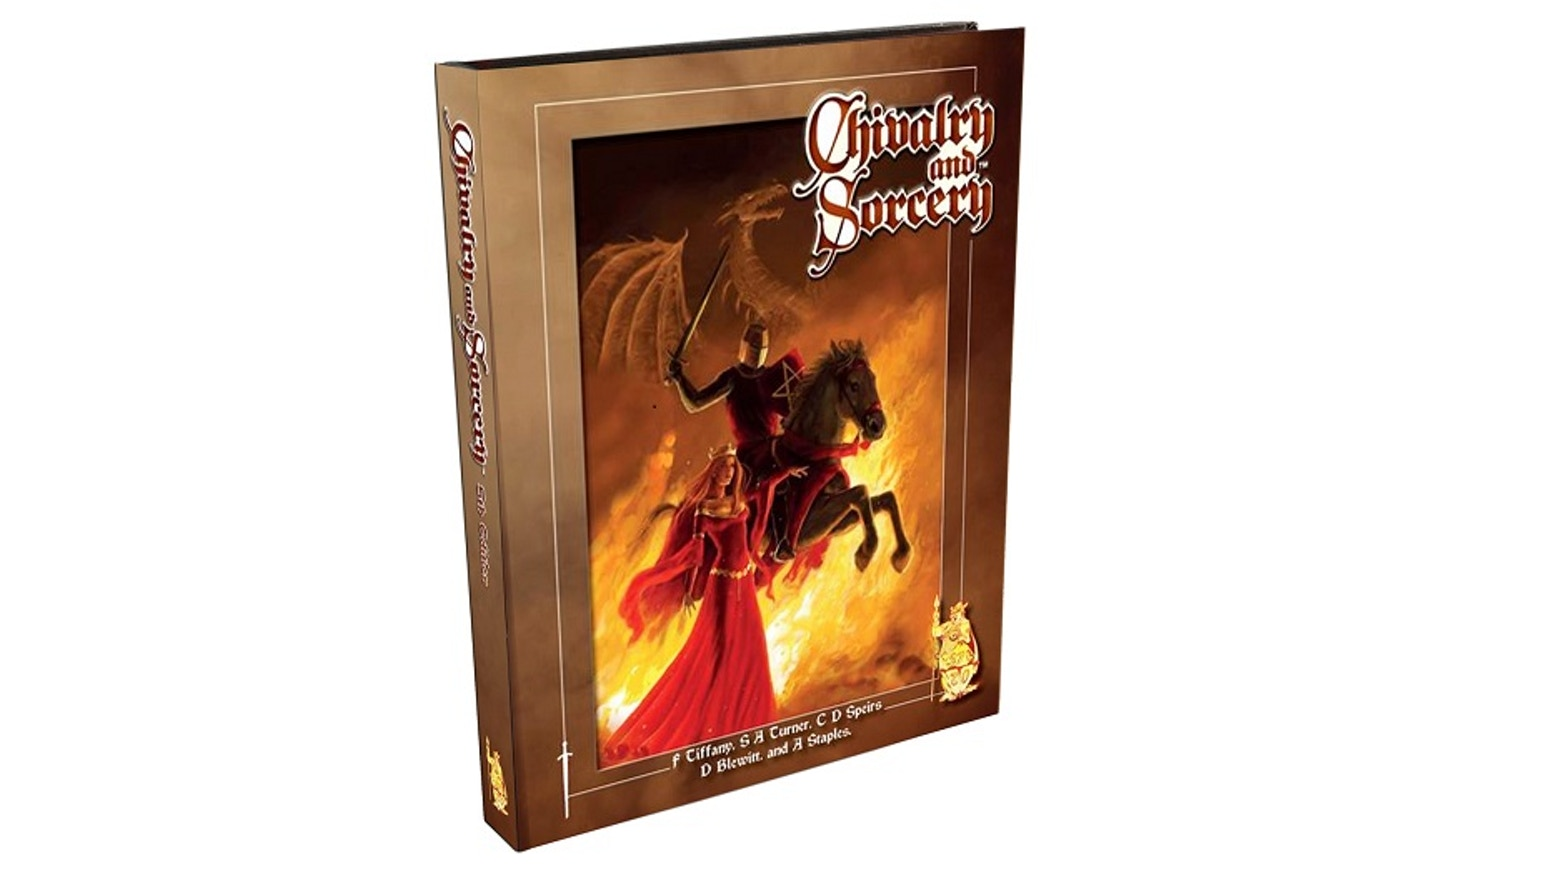 Chivalry & Sorcery - the Medieval Role Playing Game by Steve